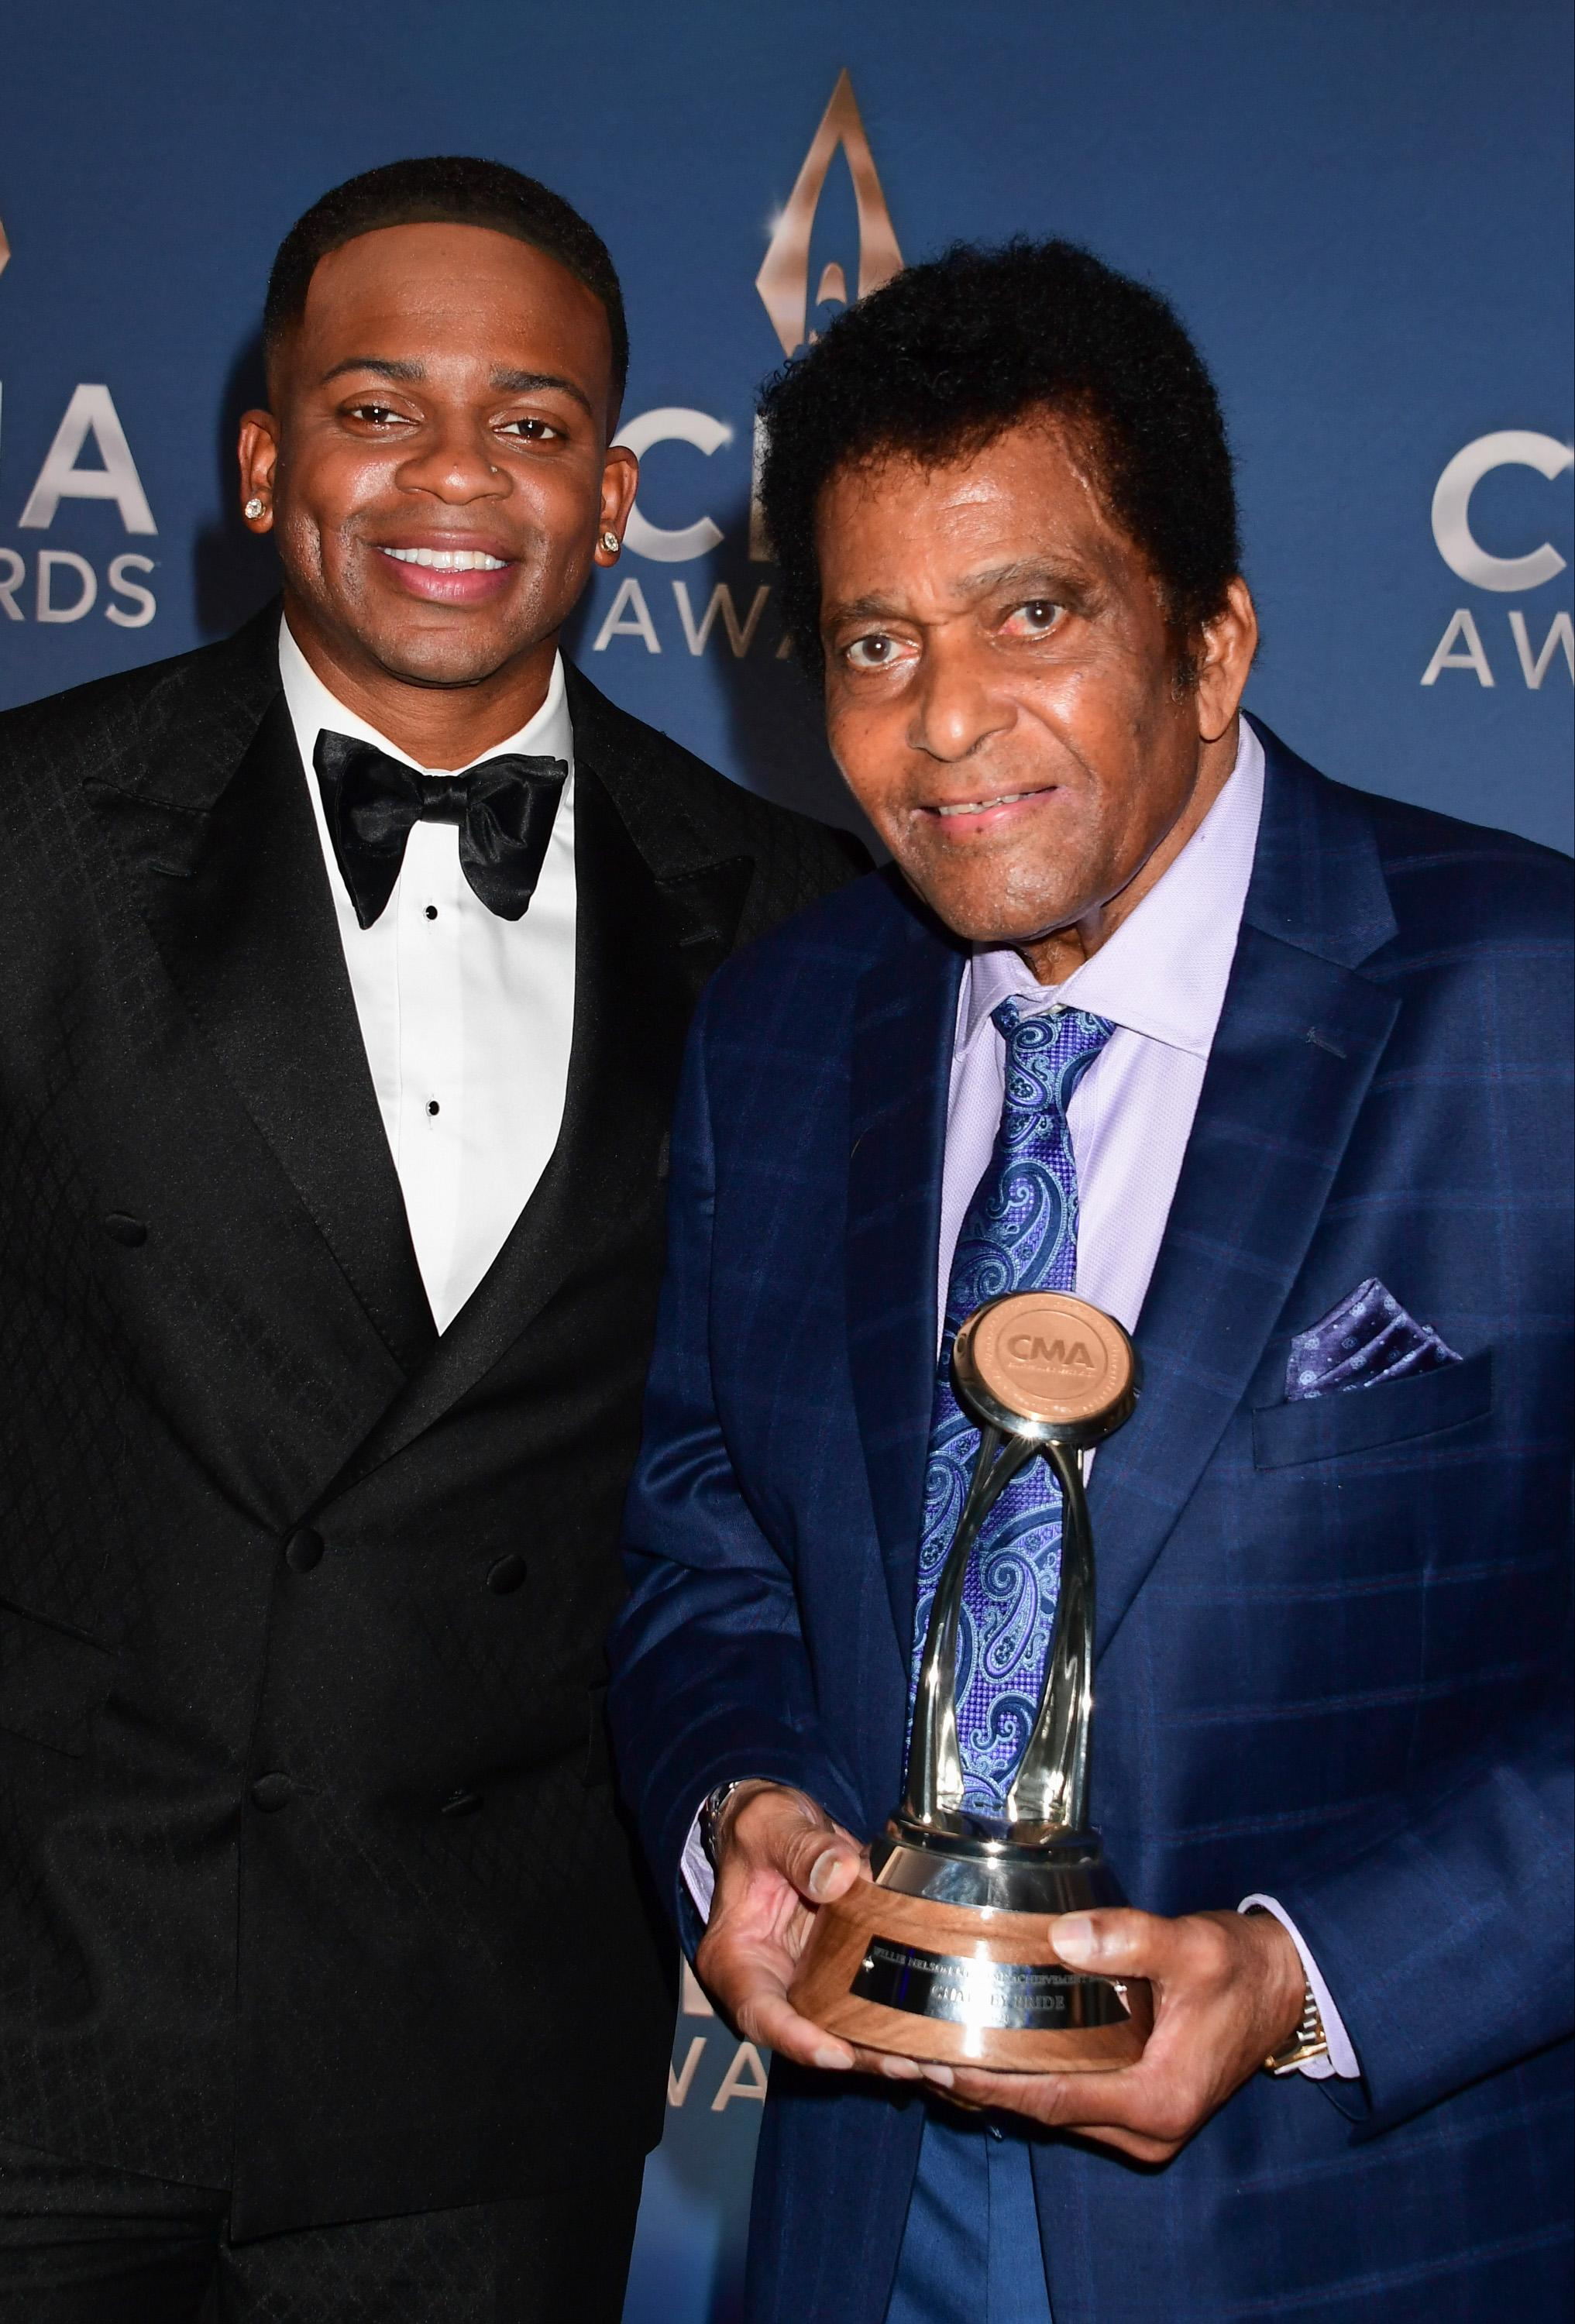 Jimmie Allen and Charley Pride at the 54th Annual CMA Awards. (Photo: ABC via Getty Images)